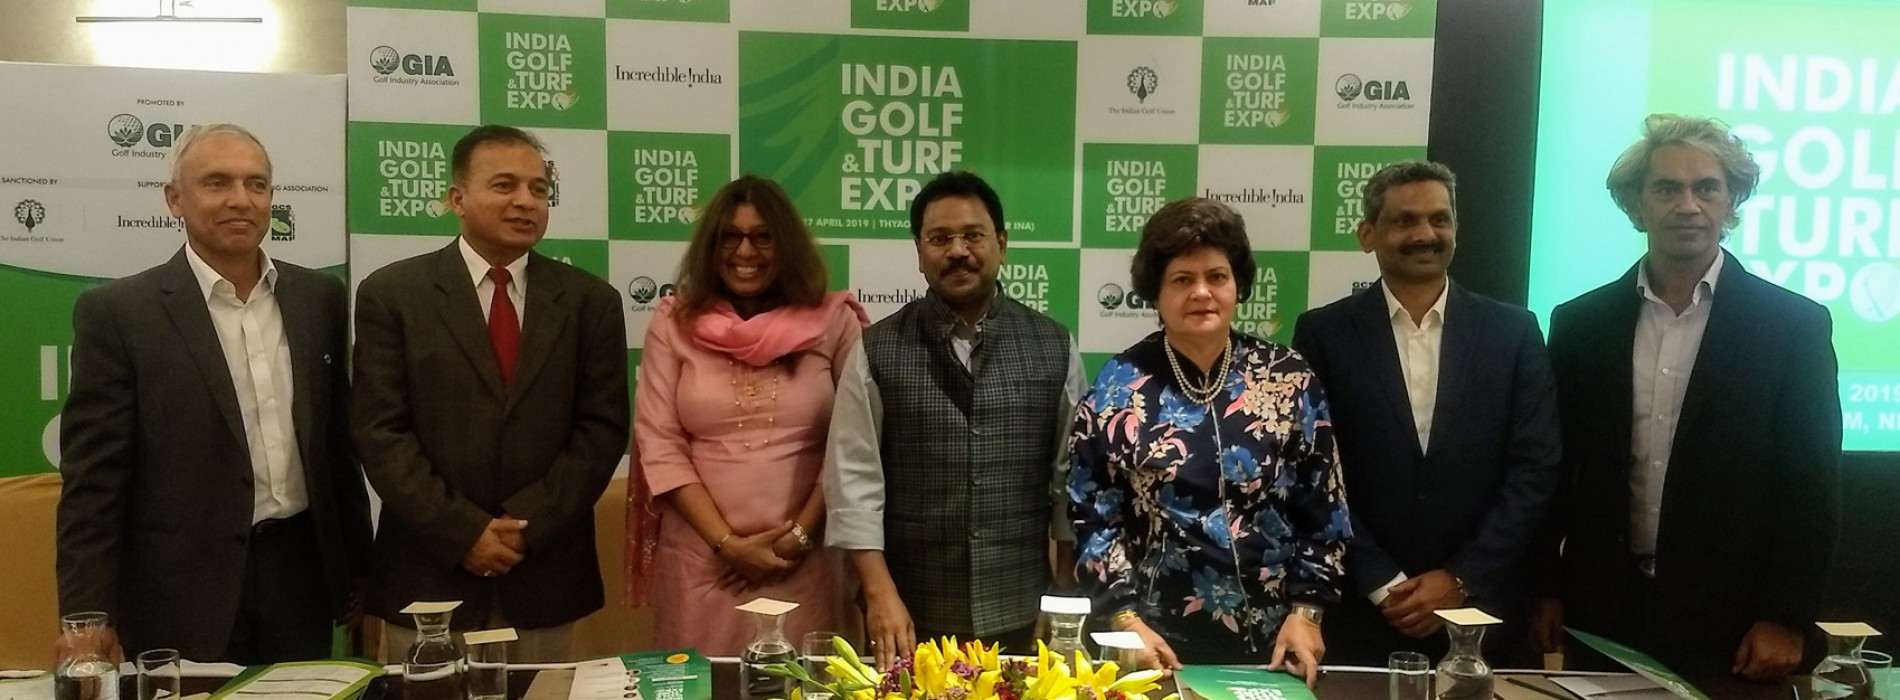 Indian Golf and Turf Expo 2019 targets INR 100 Cr as revenue from  Golf tourism in next 5 years